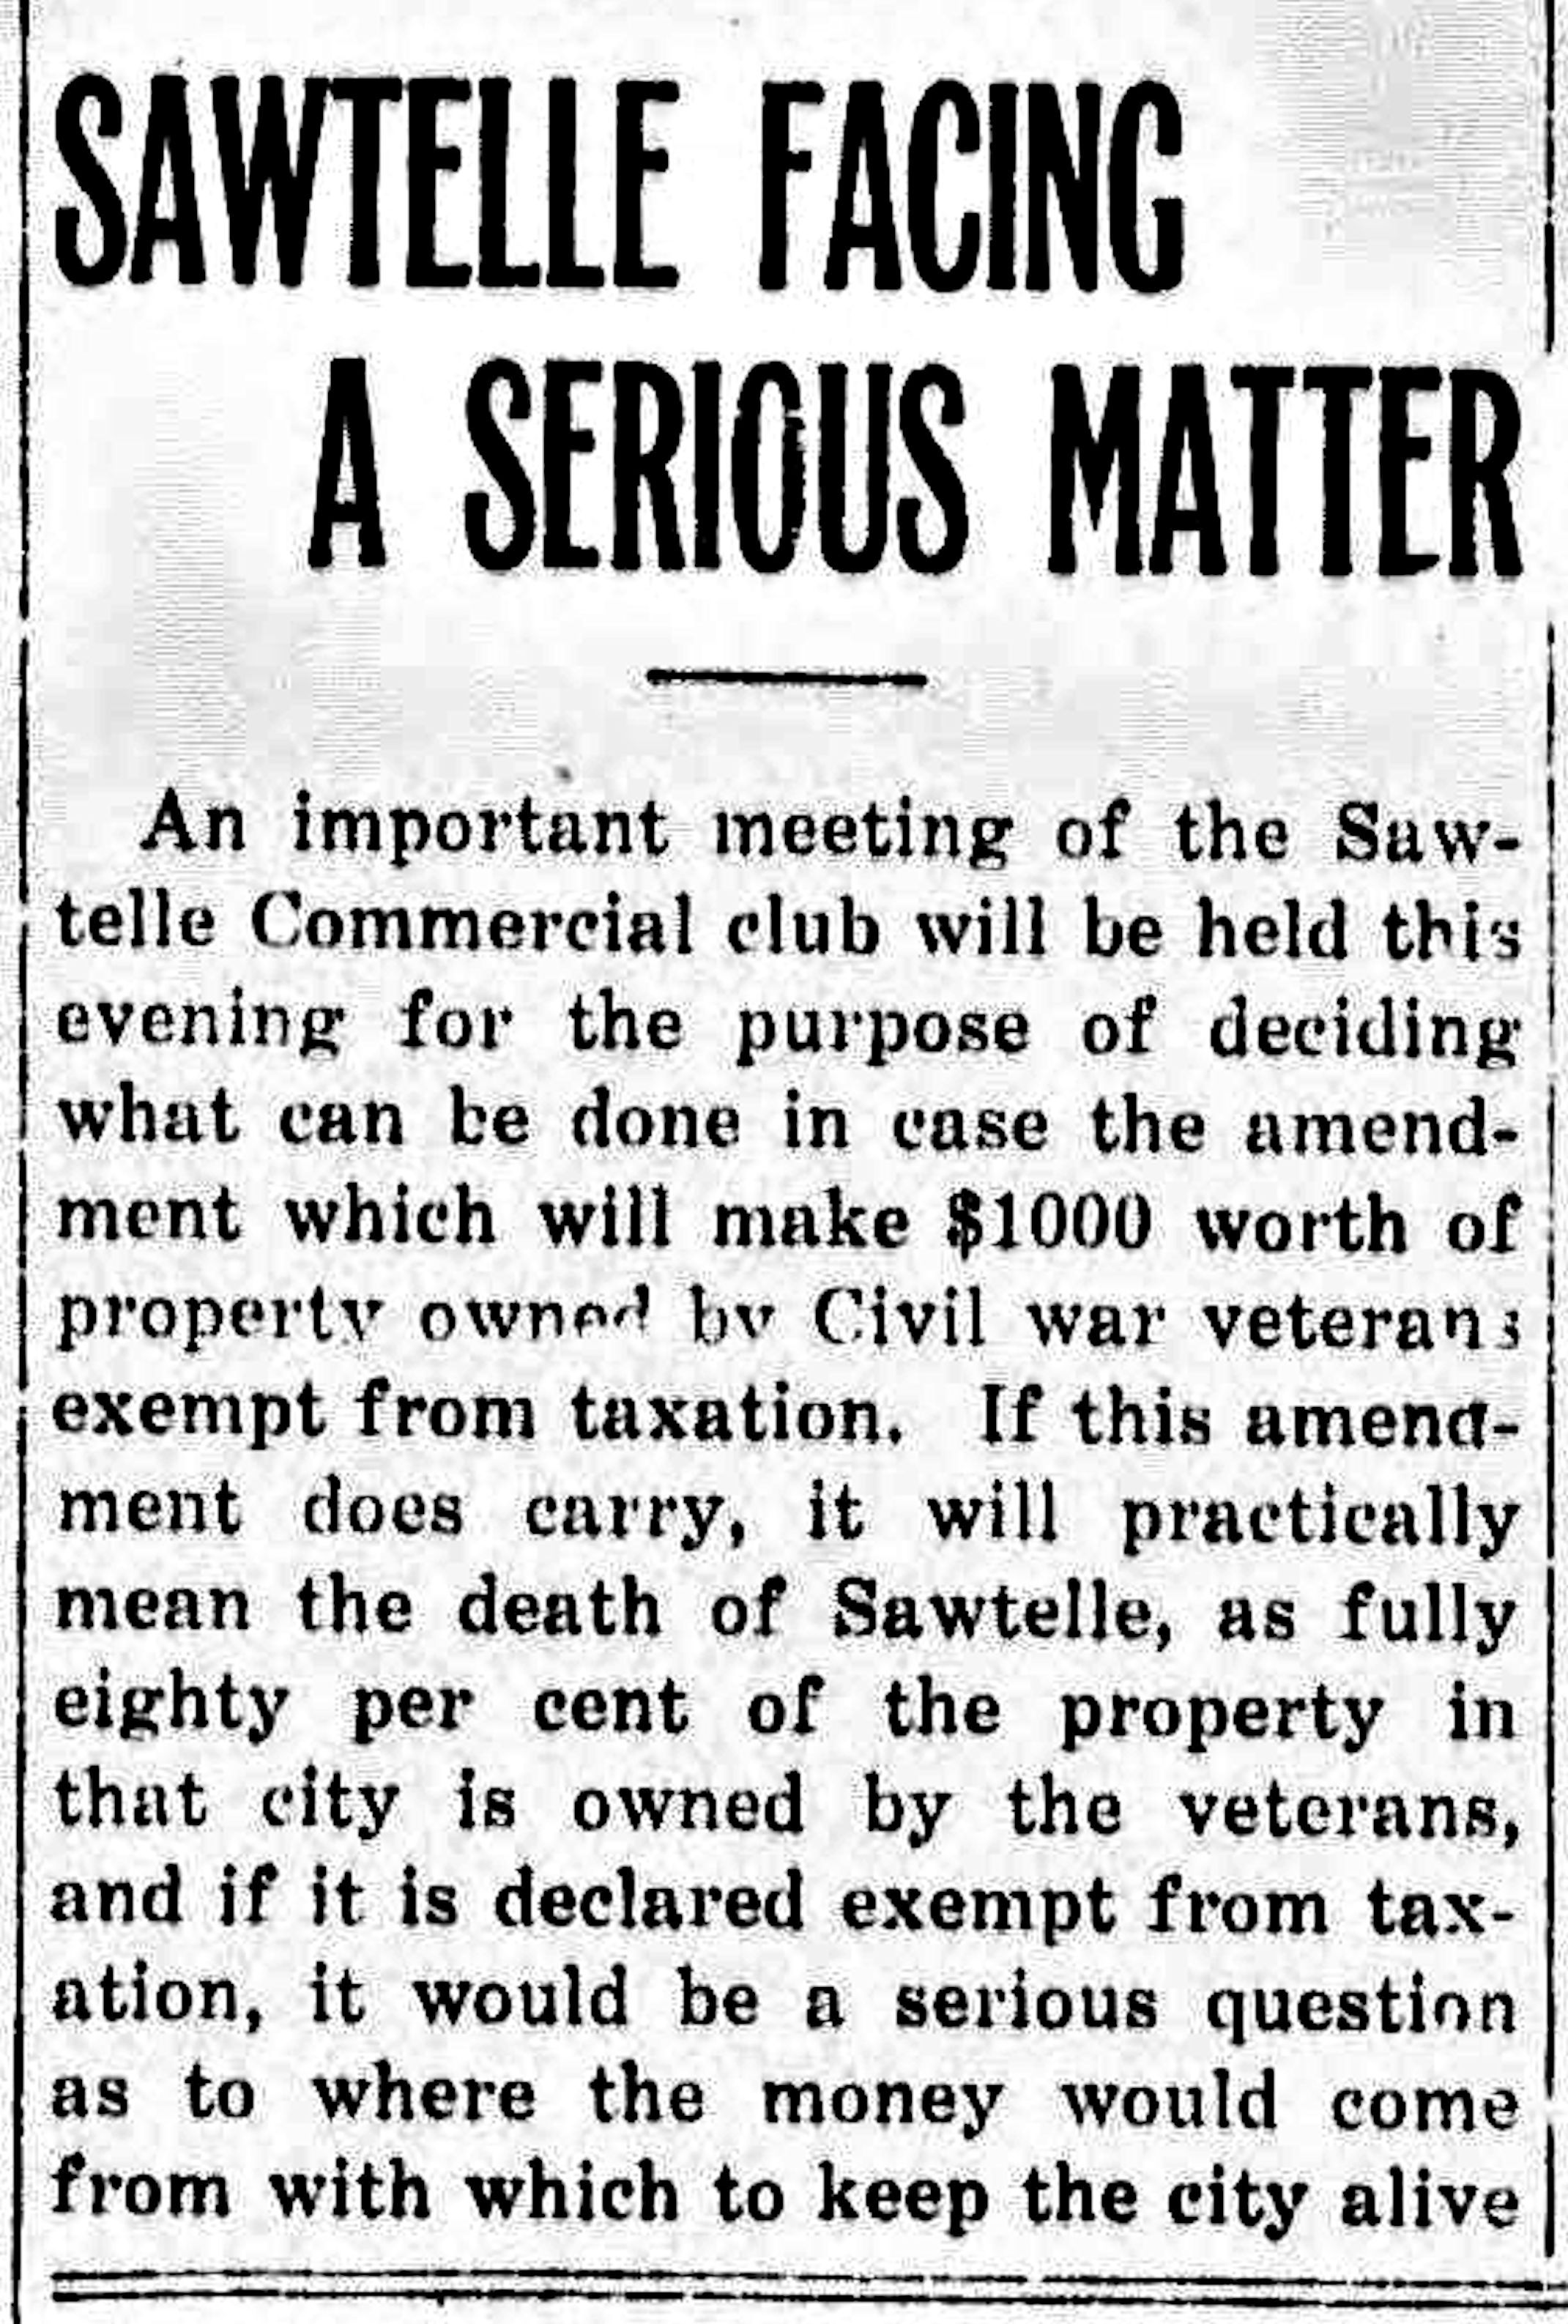 80 percent of Sawtelle is owned by (Civil War) Veterans in 1911.    The Daily Outlook, October 03, 1911